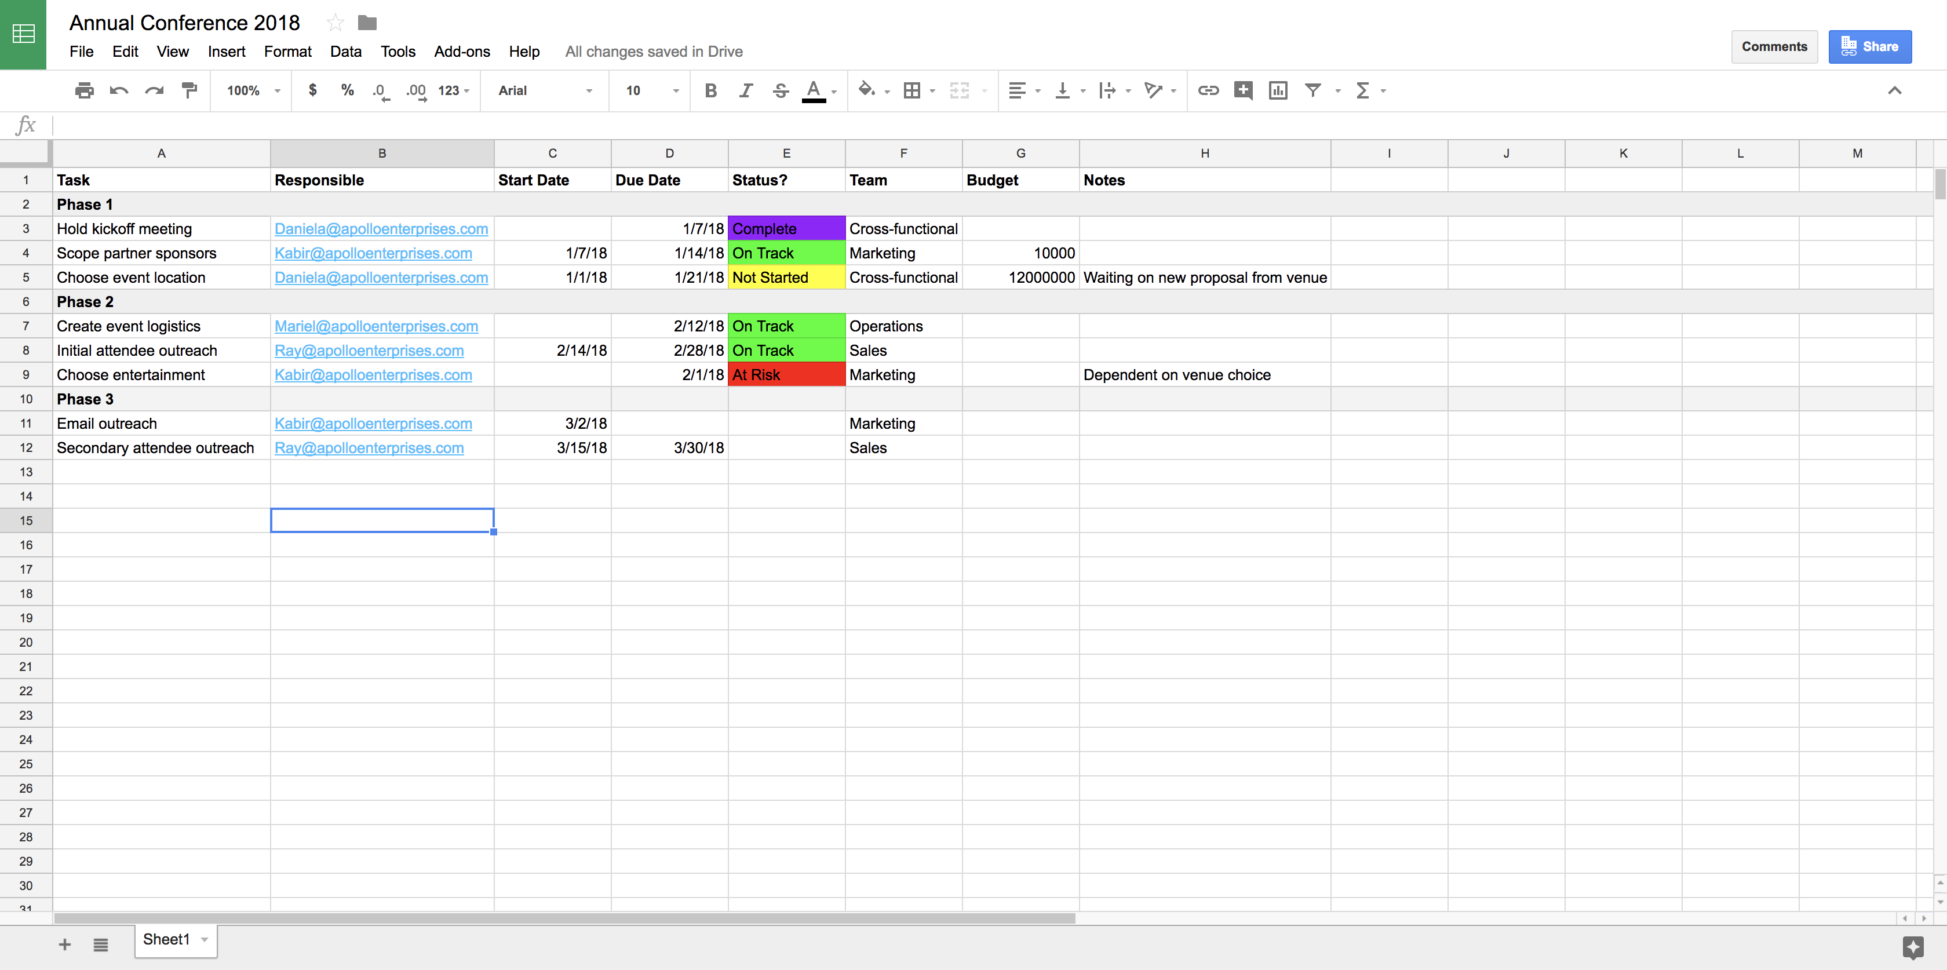 3 jobs that use spreadsheets list of jobs that use spreadsheets jobs that use excel spreadsheets jobs that use spreadsheets  Jobs That Use Spreadsheets Intended For New: Import Spreadsheets And Csv Files To Asana Projects Jobs That Use Spreadsheets Google Spreadshee